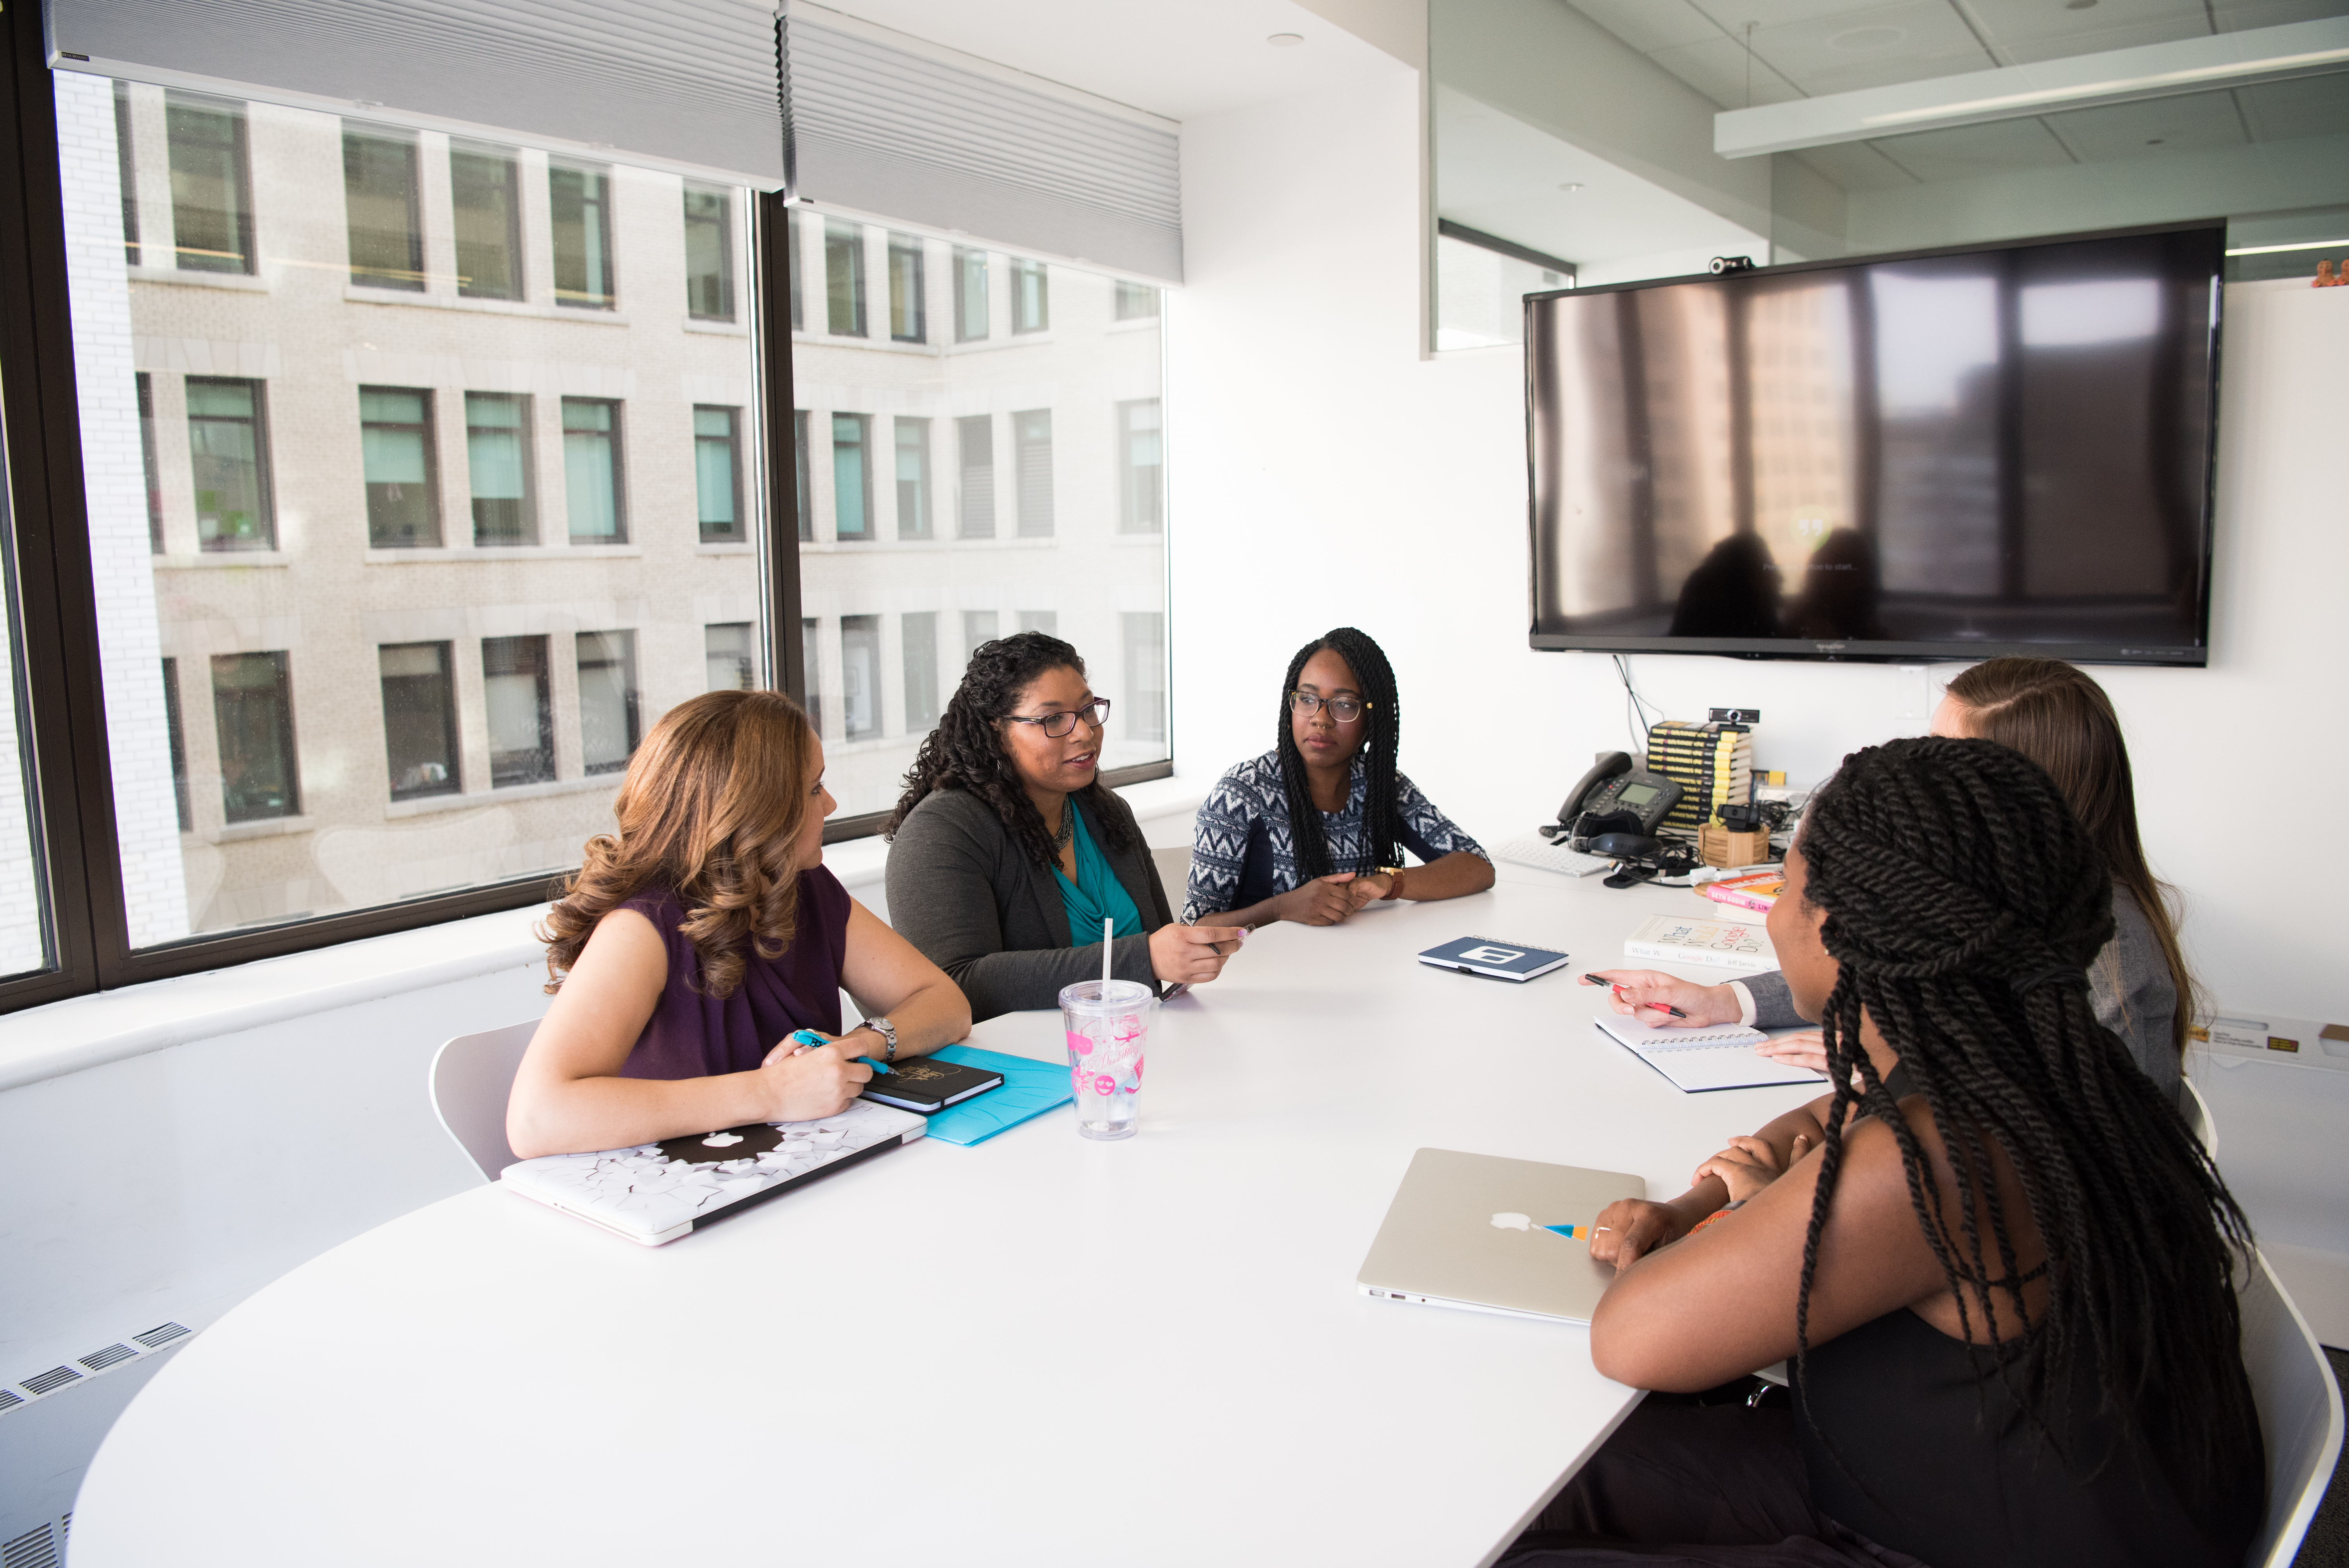 Canva - Group of Five Women Gathering Inside Office-1